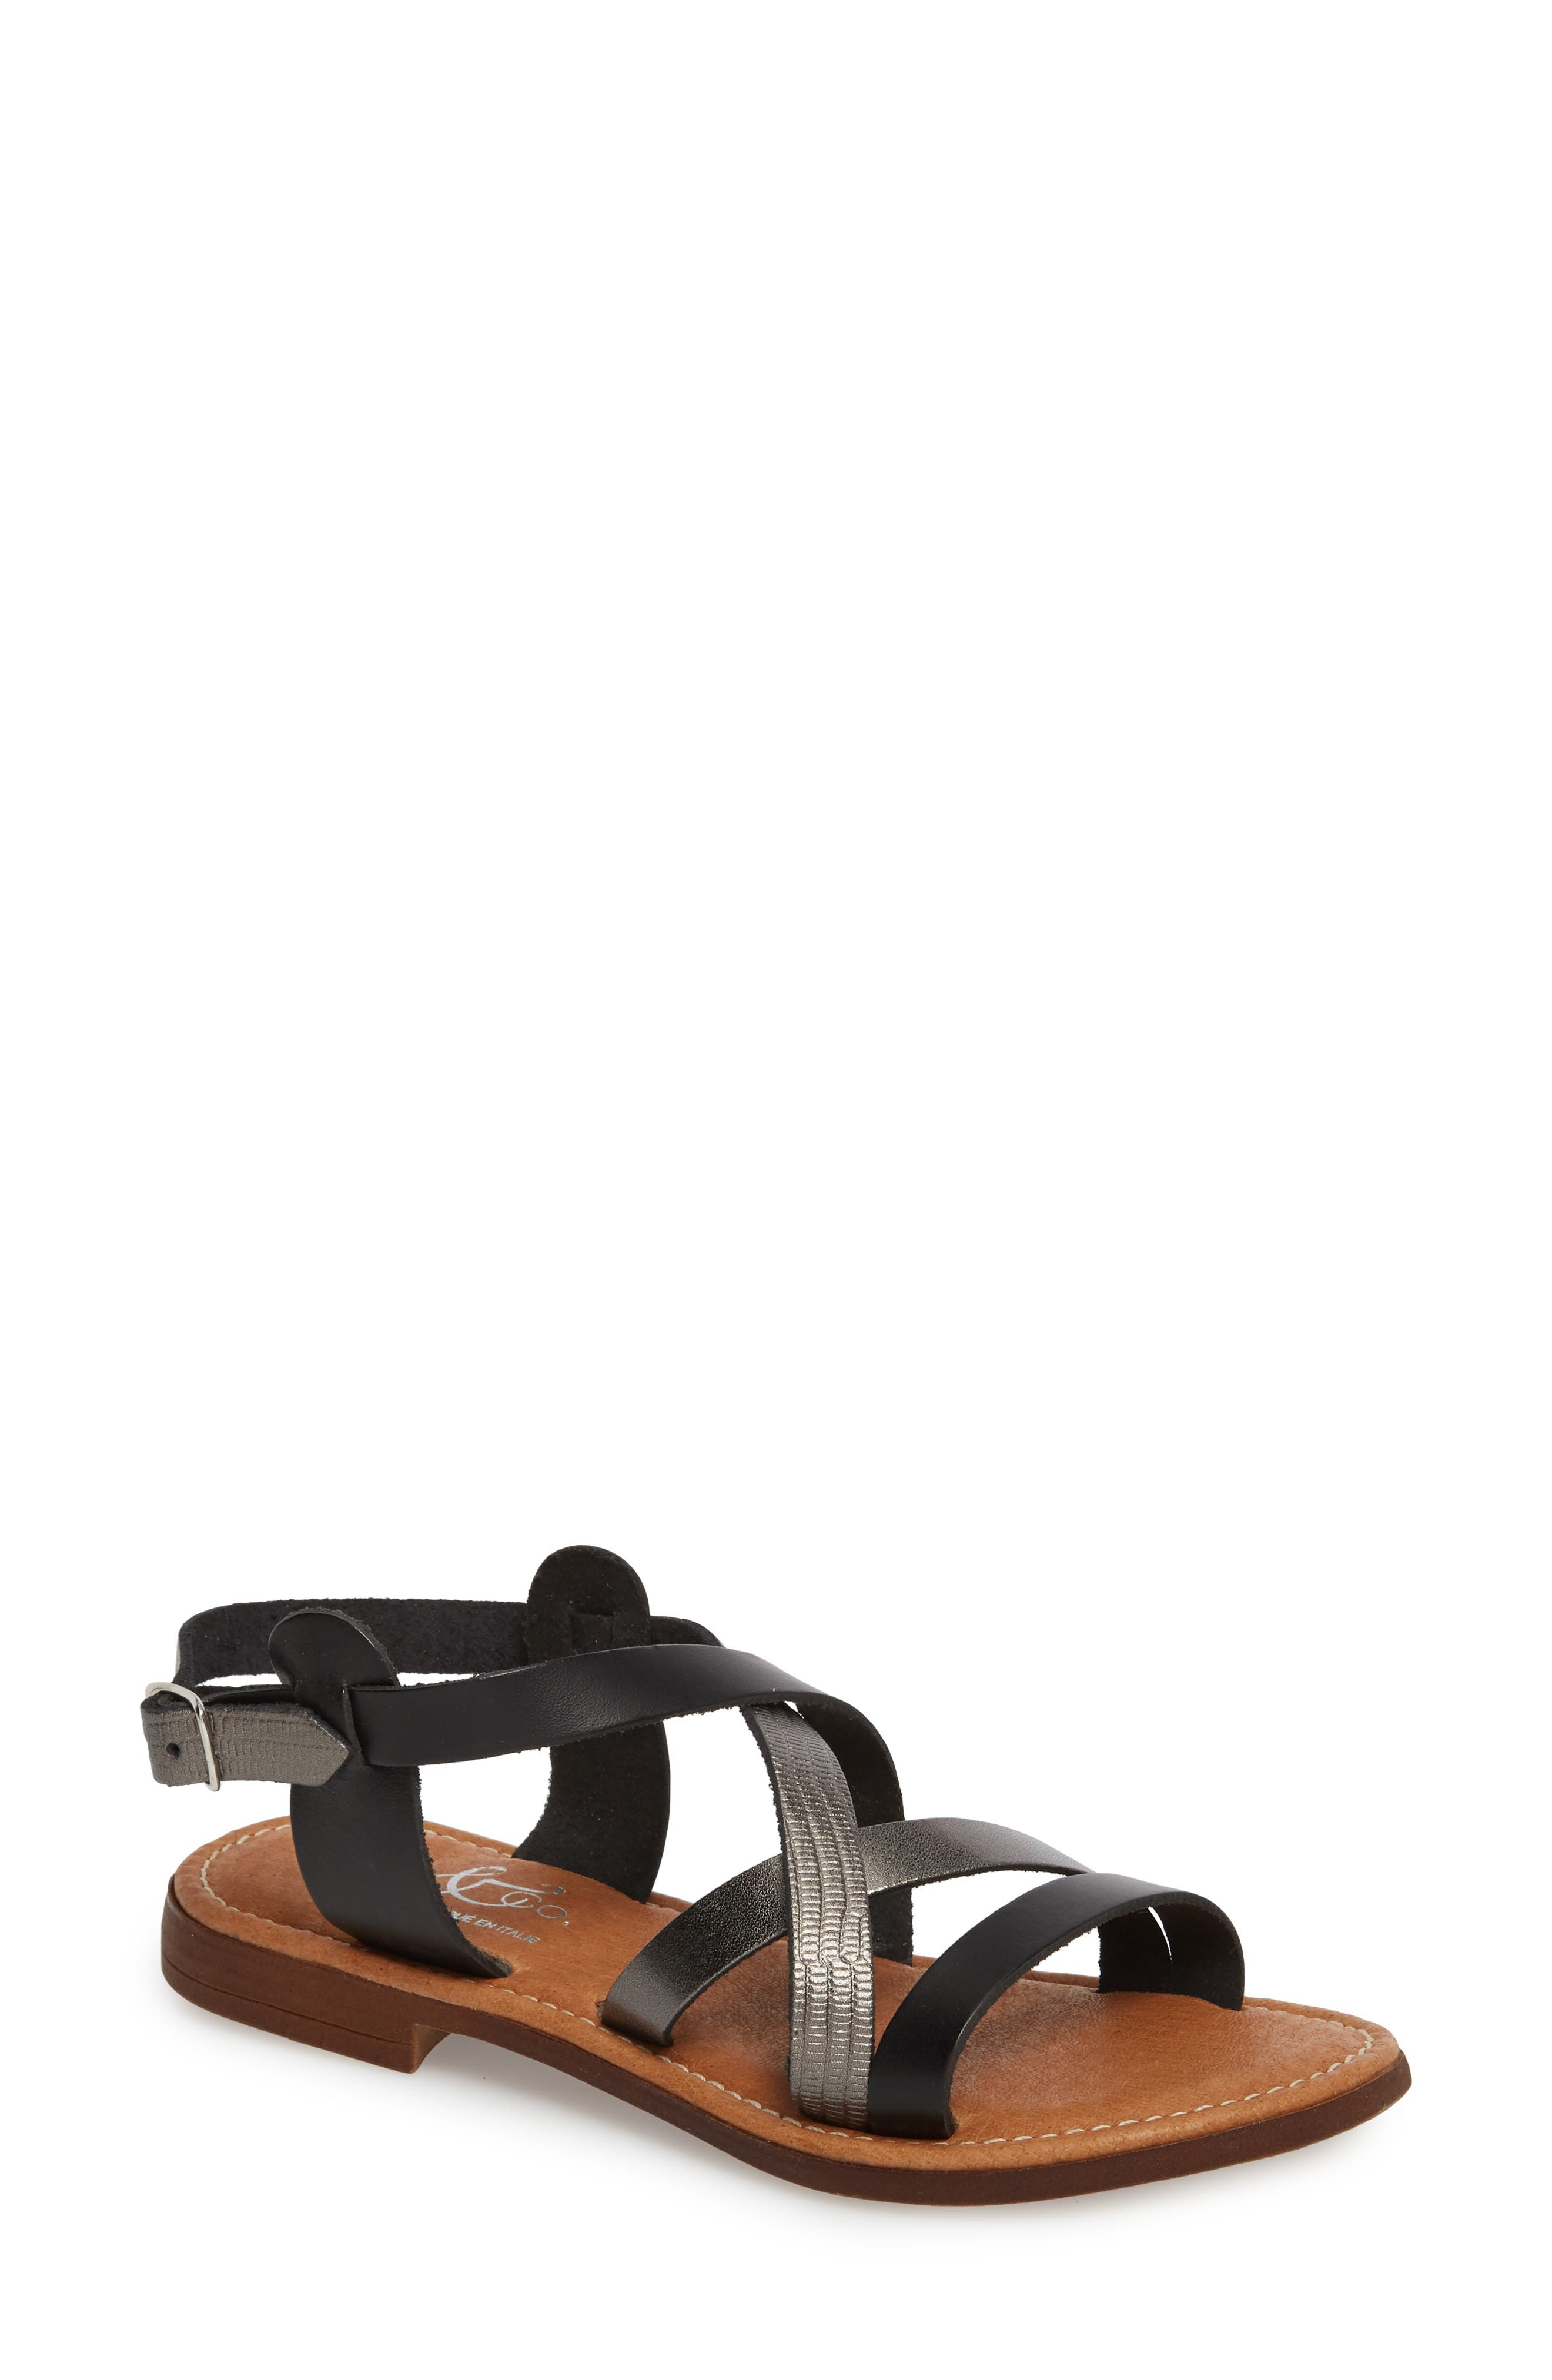 BOS. & CO., Ionna Sandal, Main thumbnail 1, color, BLACK/ PEWTER SNAKE LEATHER